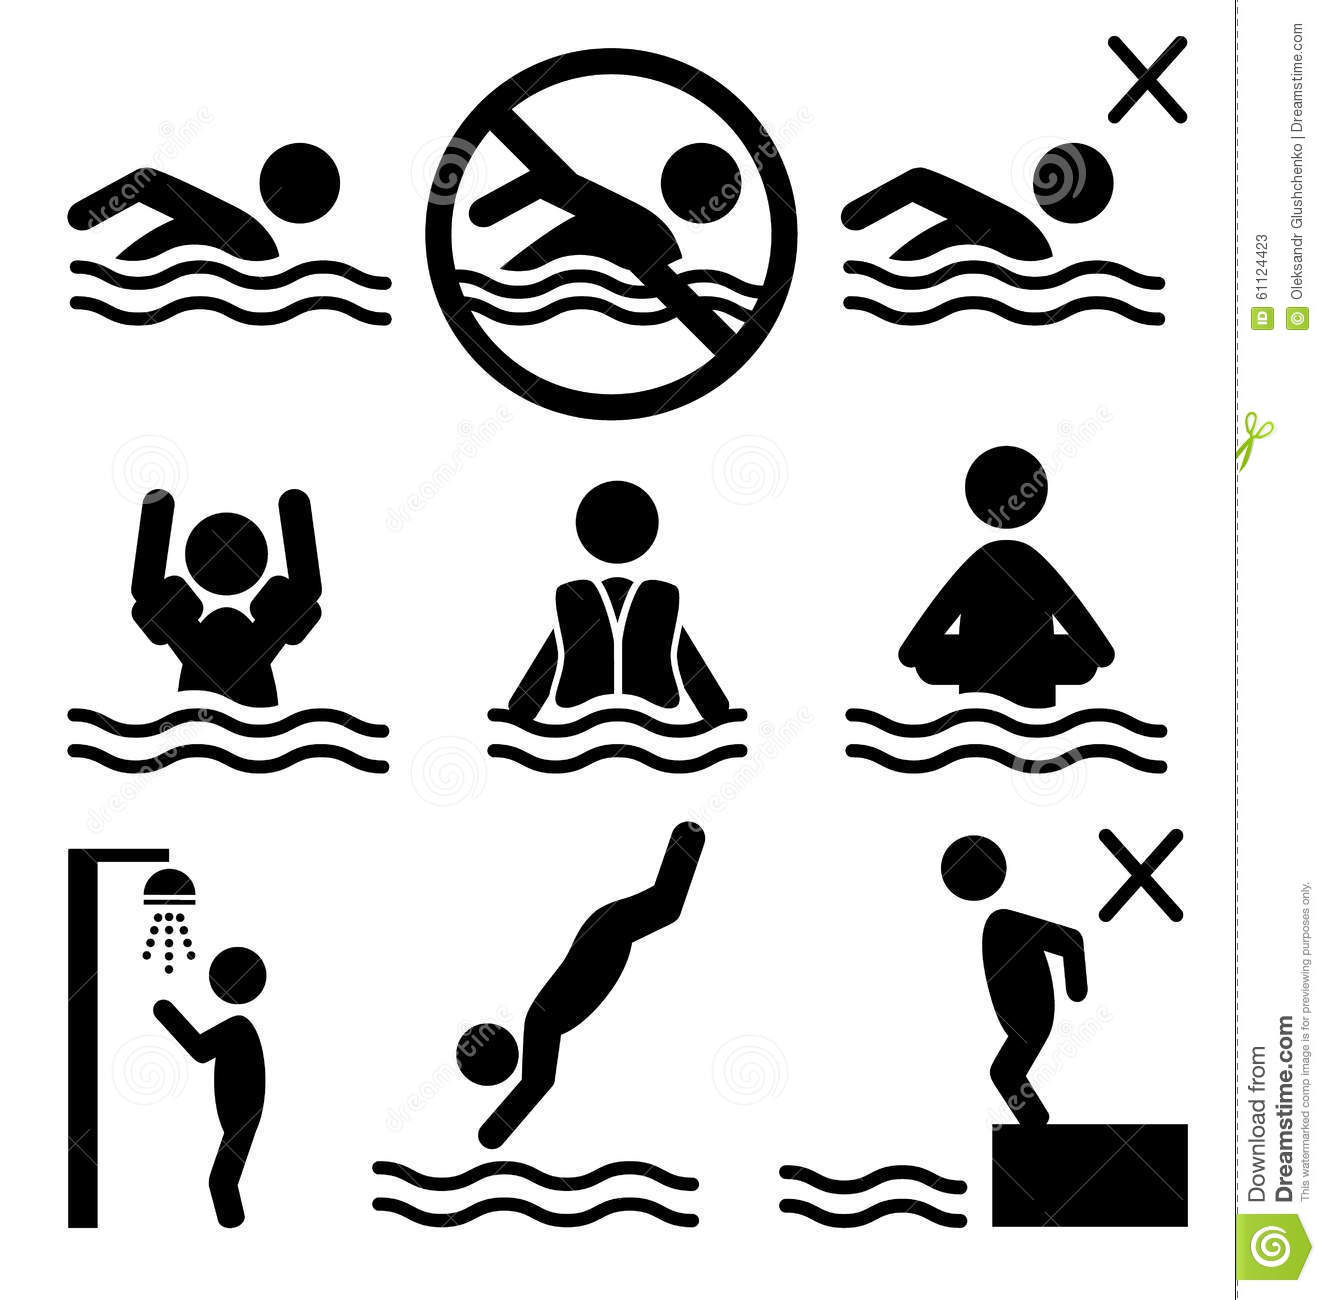 Stock Illustration Set Summer Swim Water Information Flat People Pictogram Icon Isolated White Background Image61124423 also Go Kart further Car Packed Full Of Family Members Driving On Vacation 223483 besides Road Bully Driver Rage Stick Figure Pictogram Icons Gm533347367 56153094 besides 533347367. on driving car icons